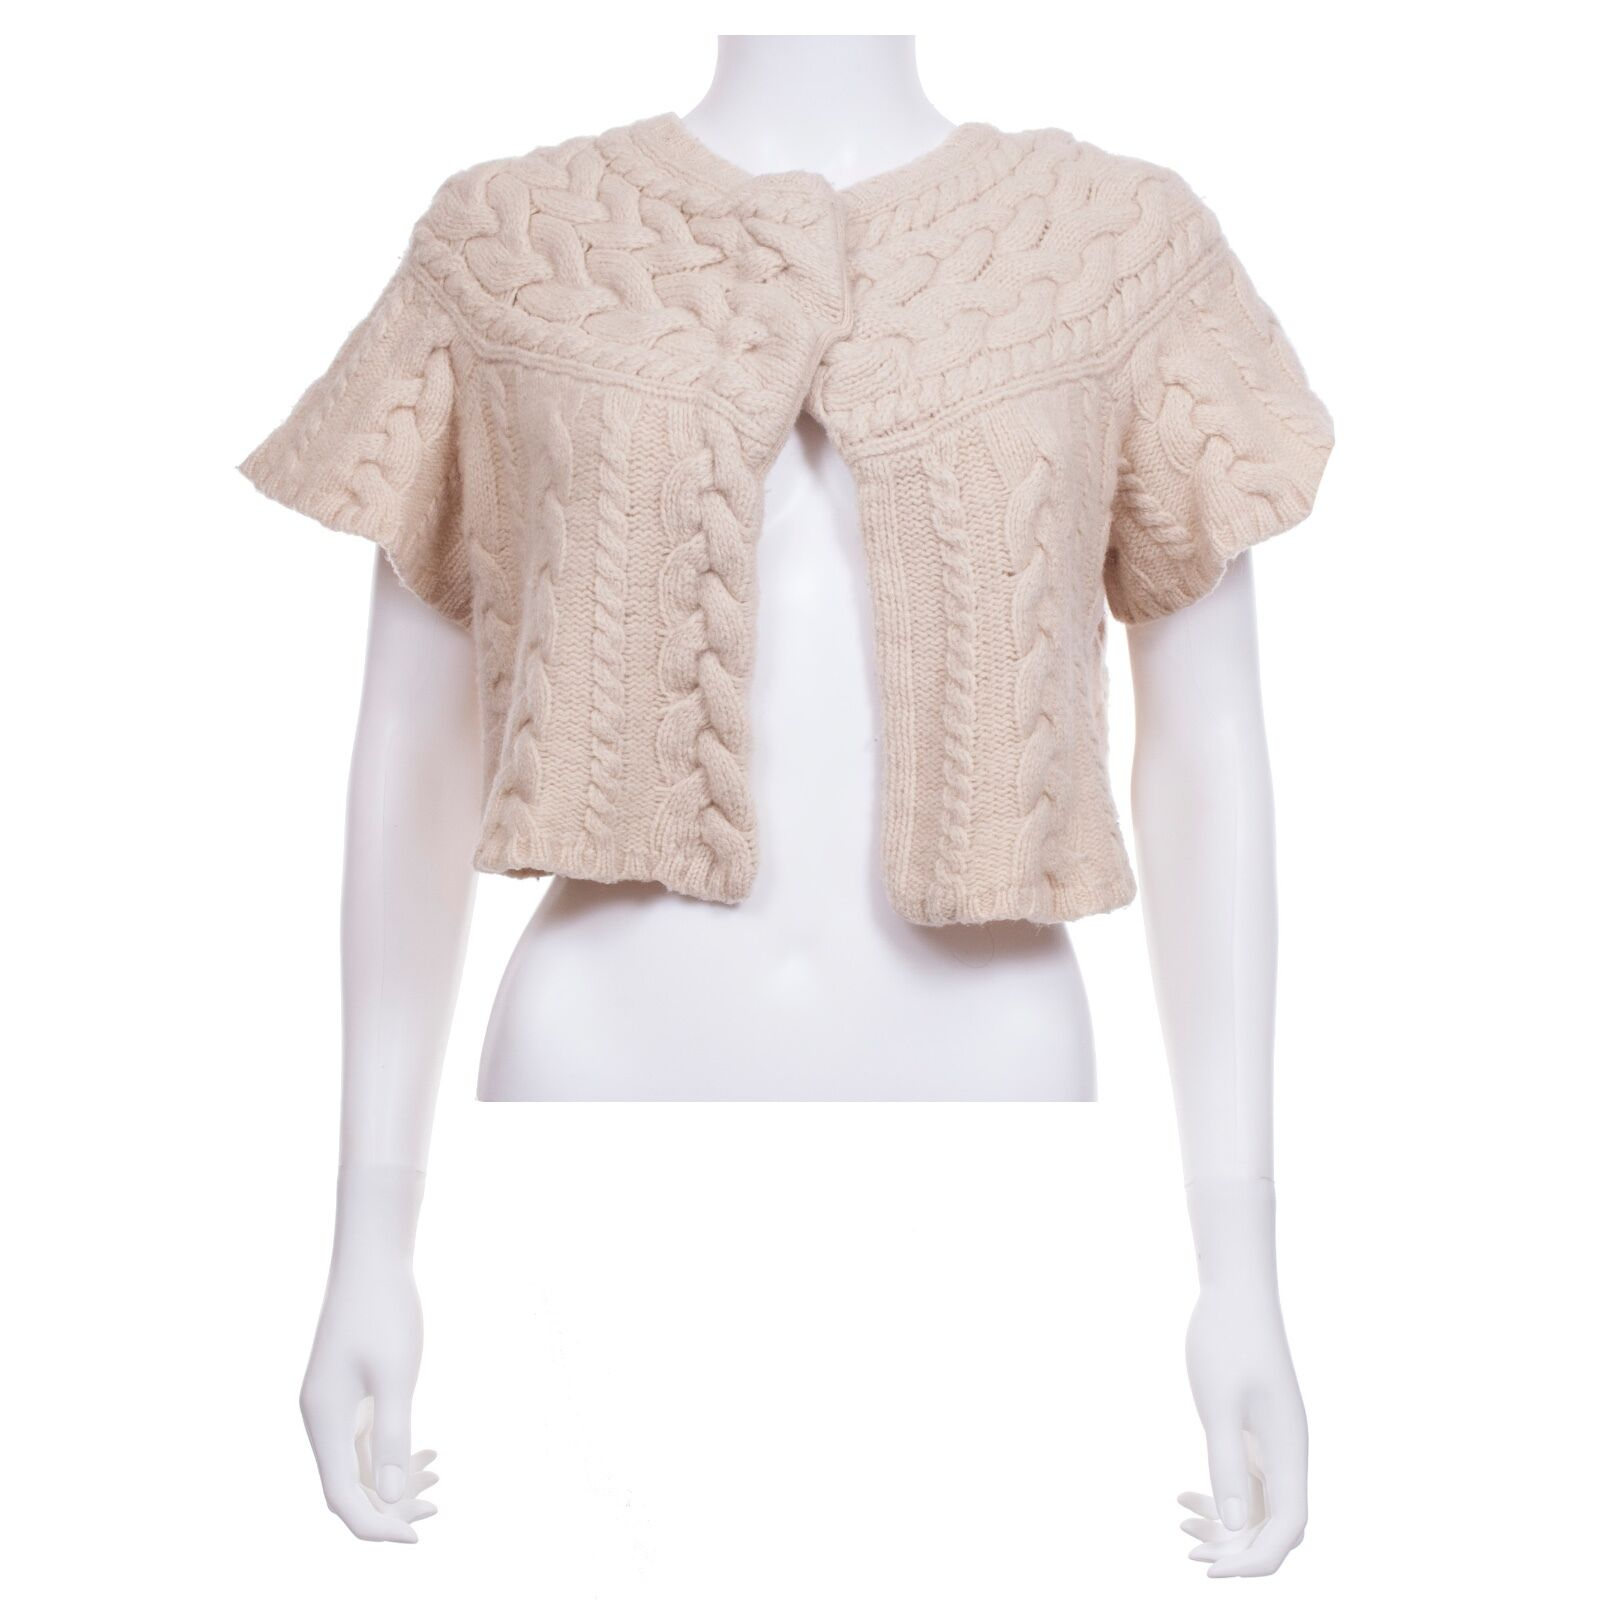 BCBGMAXAZRIA cream cropped cable knit short-sleeve cardigan sweater size M